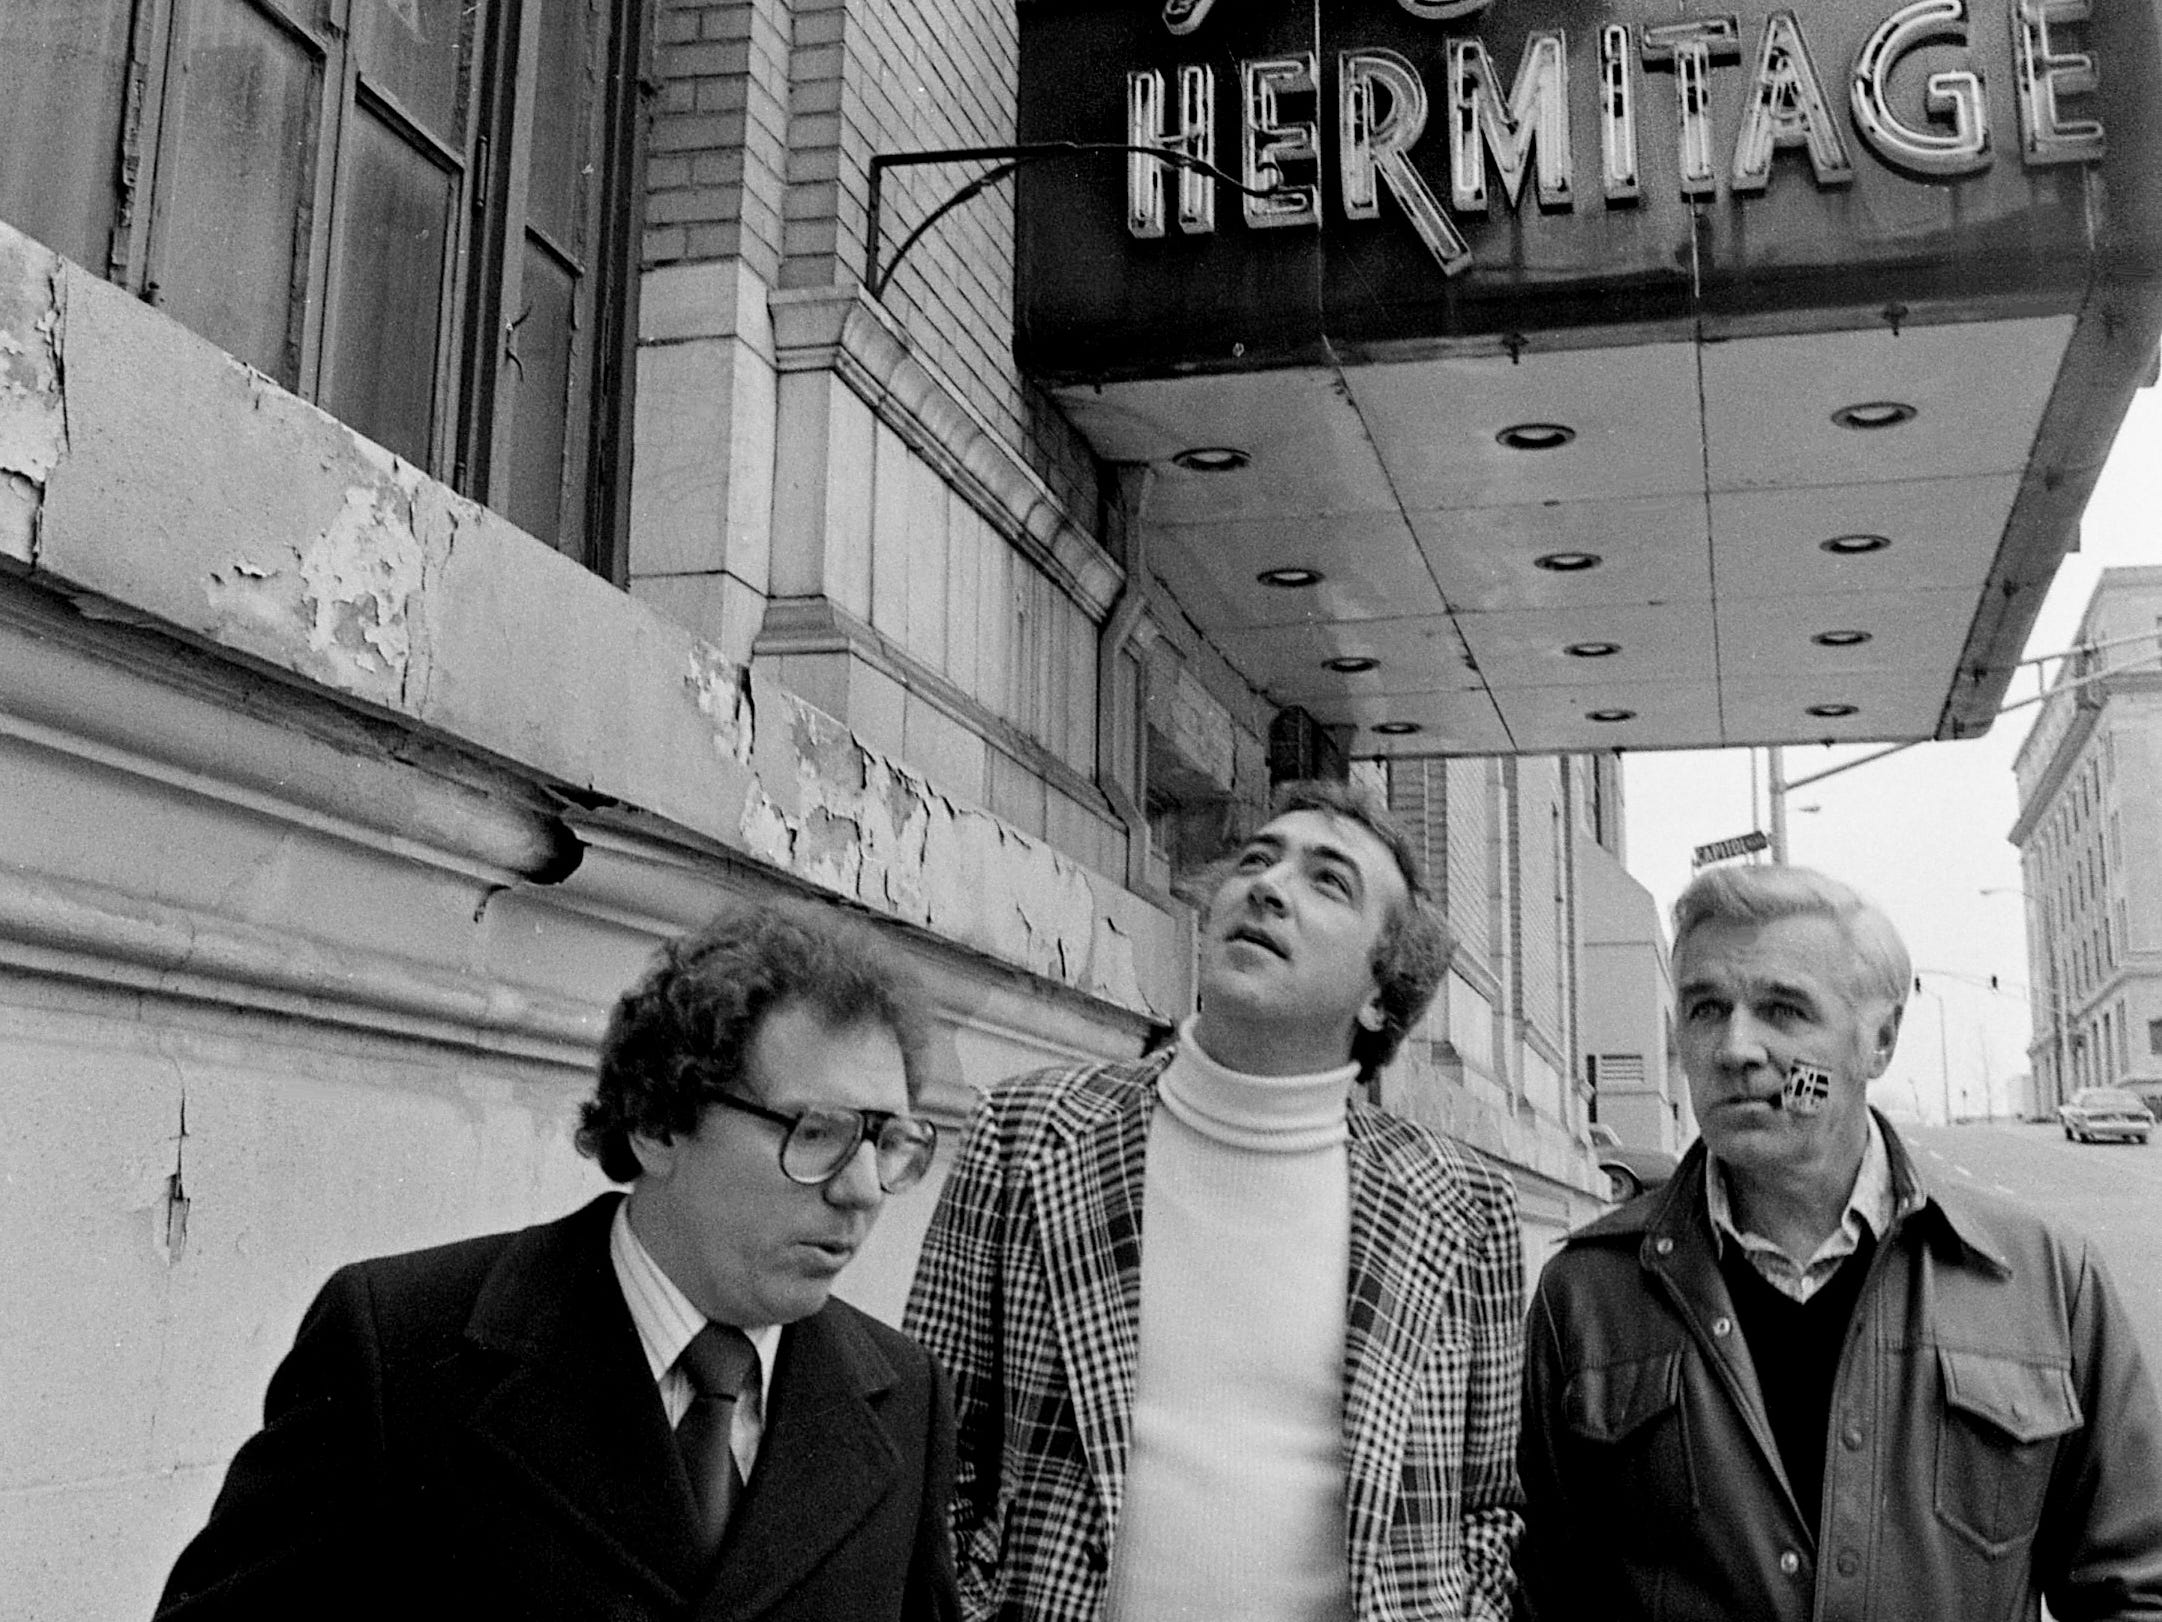 Metro Mayor Richard Fulton, right, discusses the multimillion-dollar renovation plan for the once grand Hermitage Hotel with leasing agent Jerry Carroll, left, and project coordinator Lloyd Buzzi outside the hotel Feb. 17, 1979.